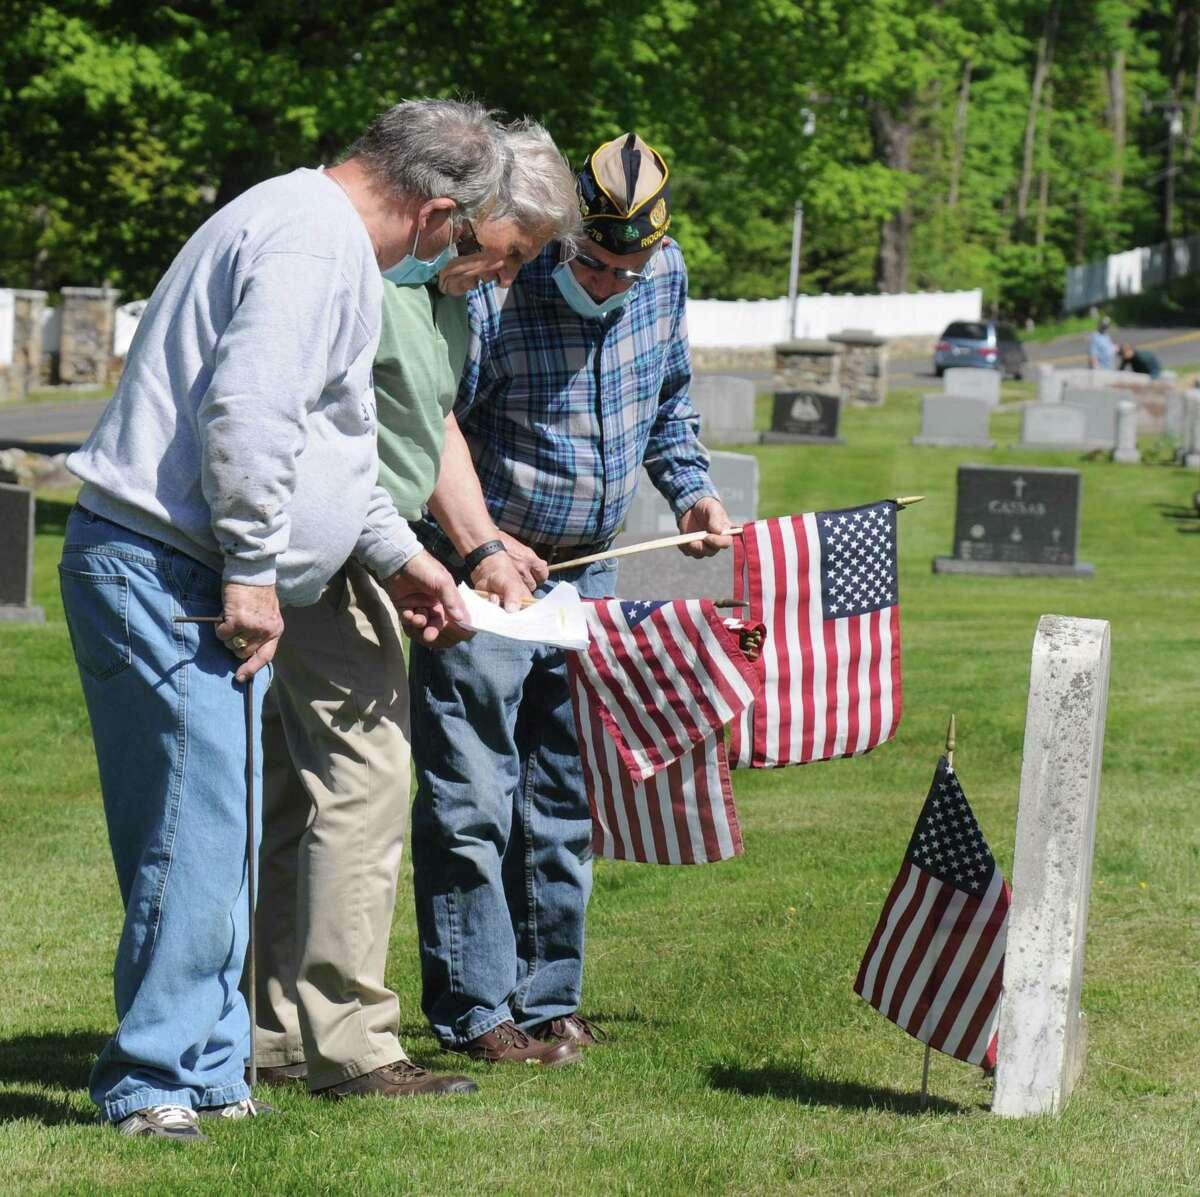 Mike Liberta, George Schuster and John Knoche look for the name of the veteran whose grave they'll honor with a small American Flag.